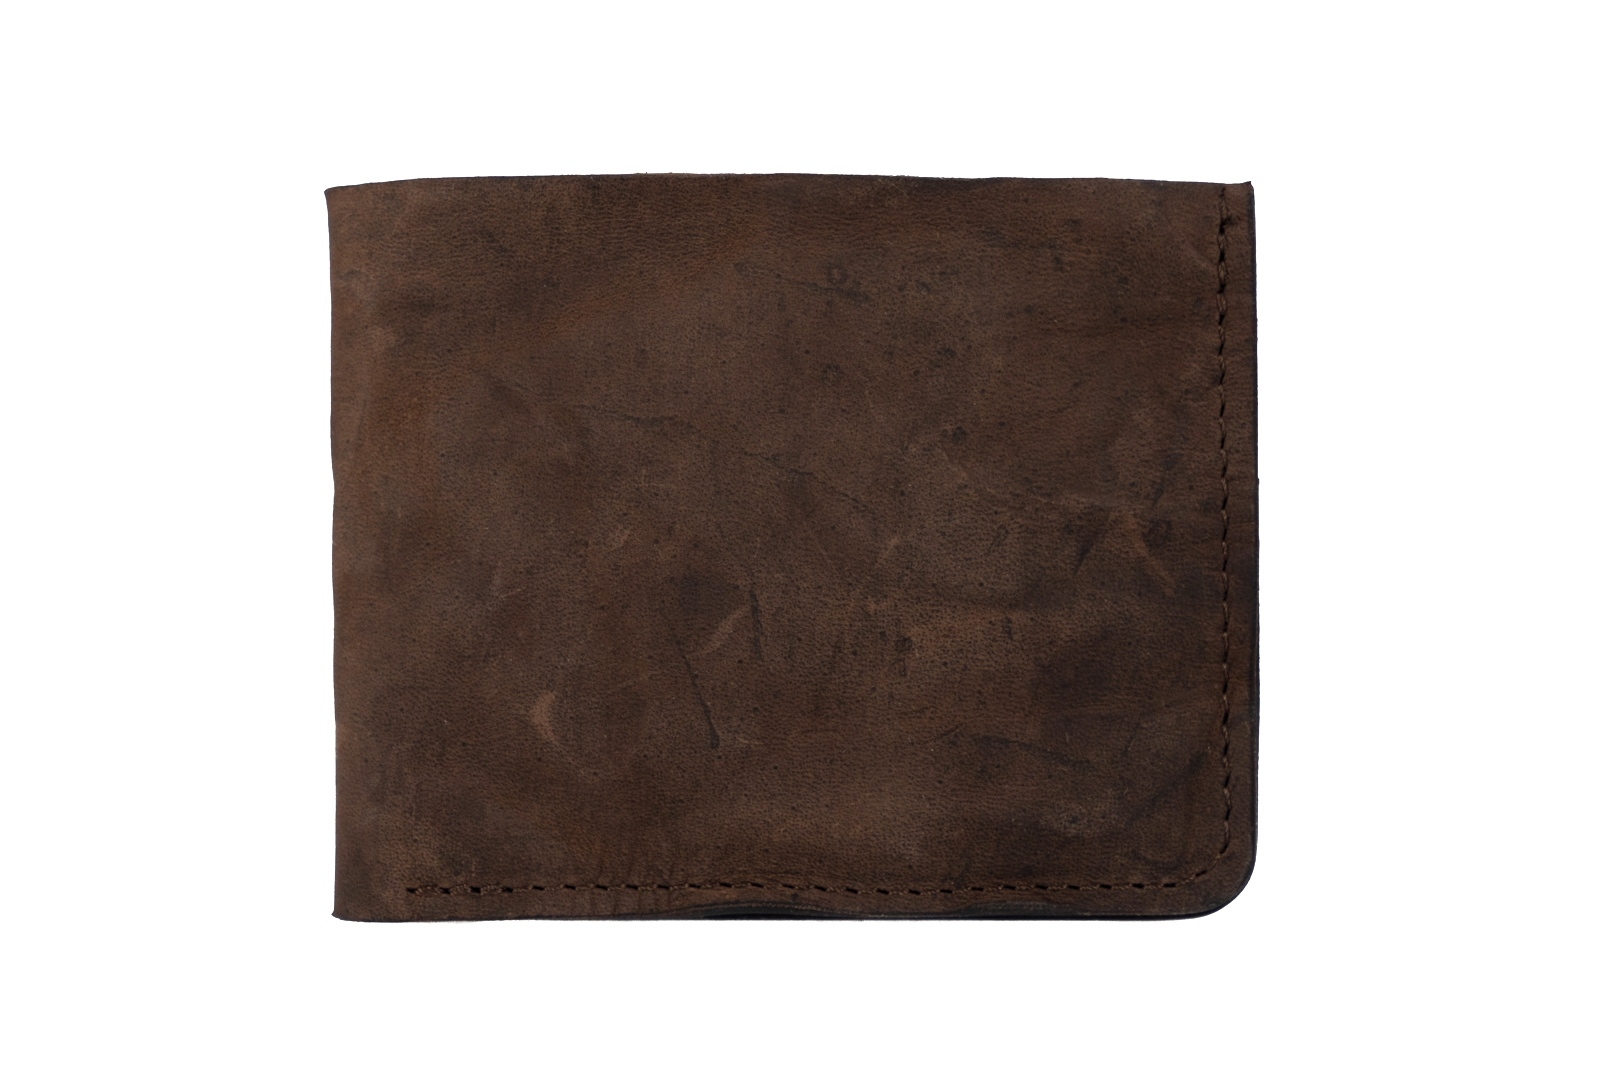 Bulimba Mw Kangaroo Leather Wallet